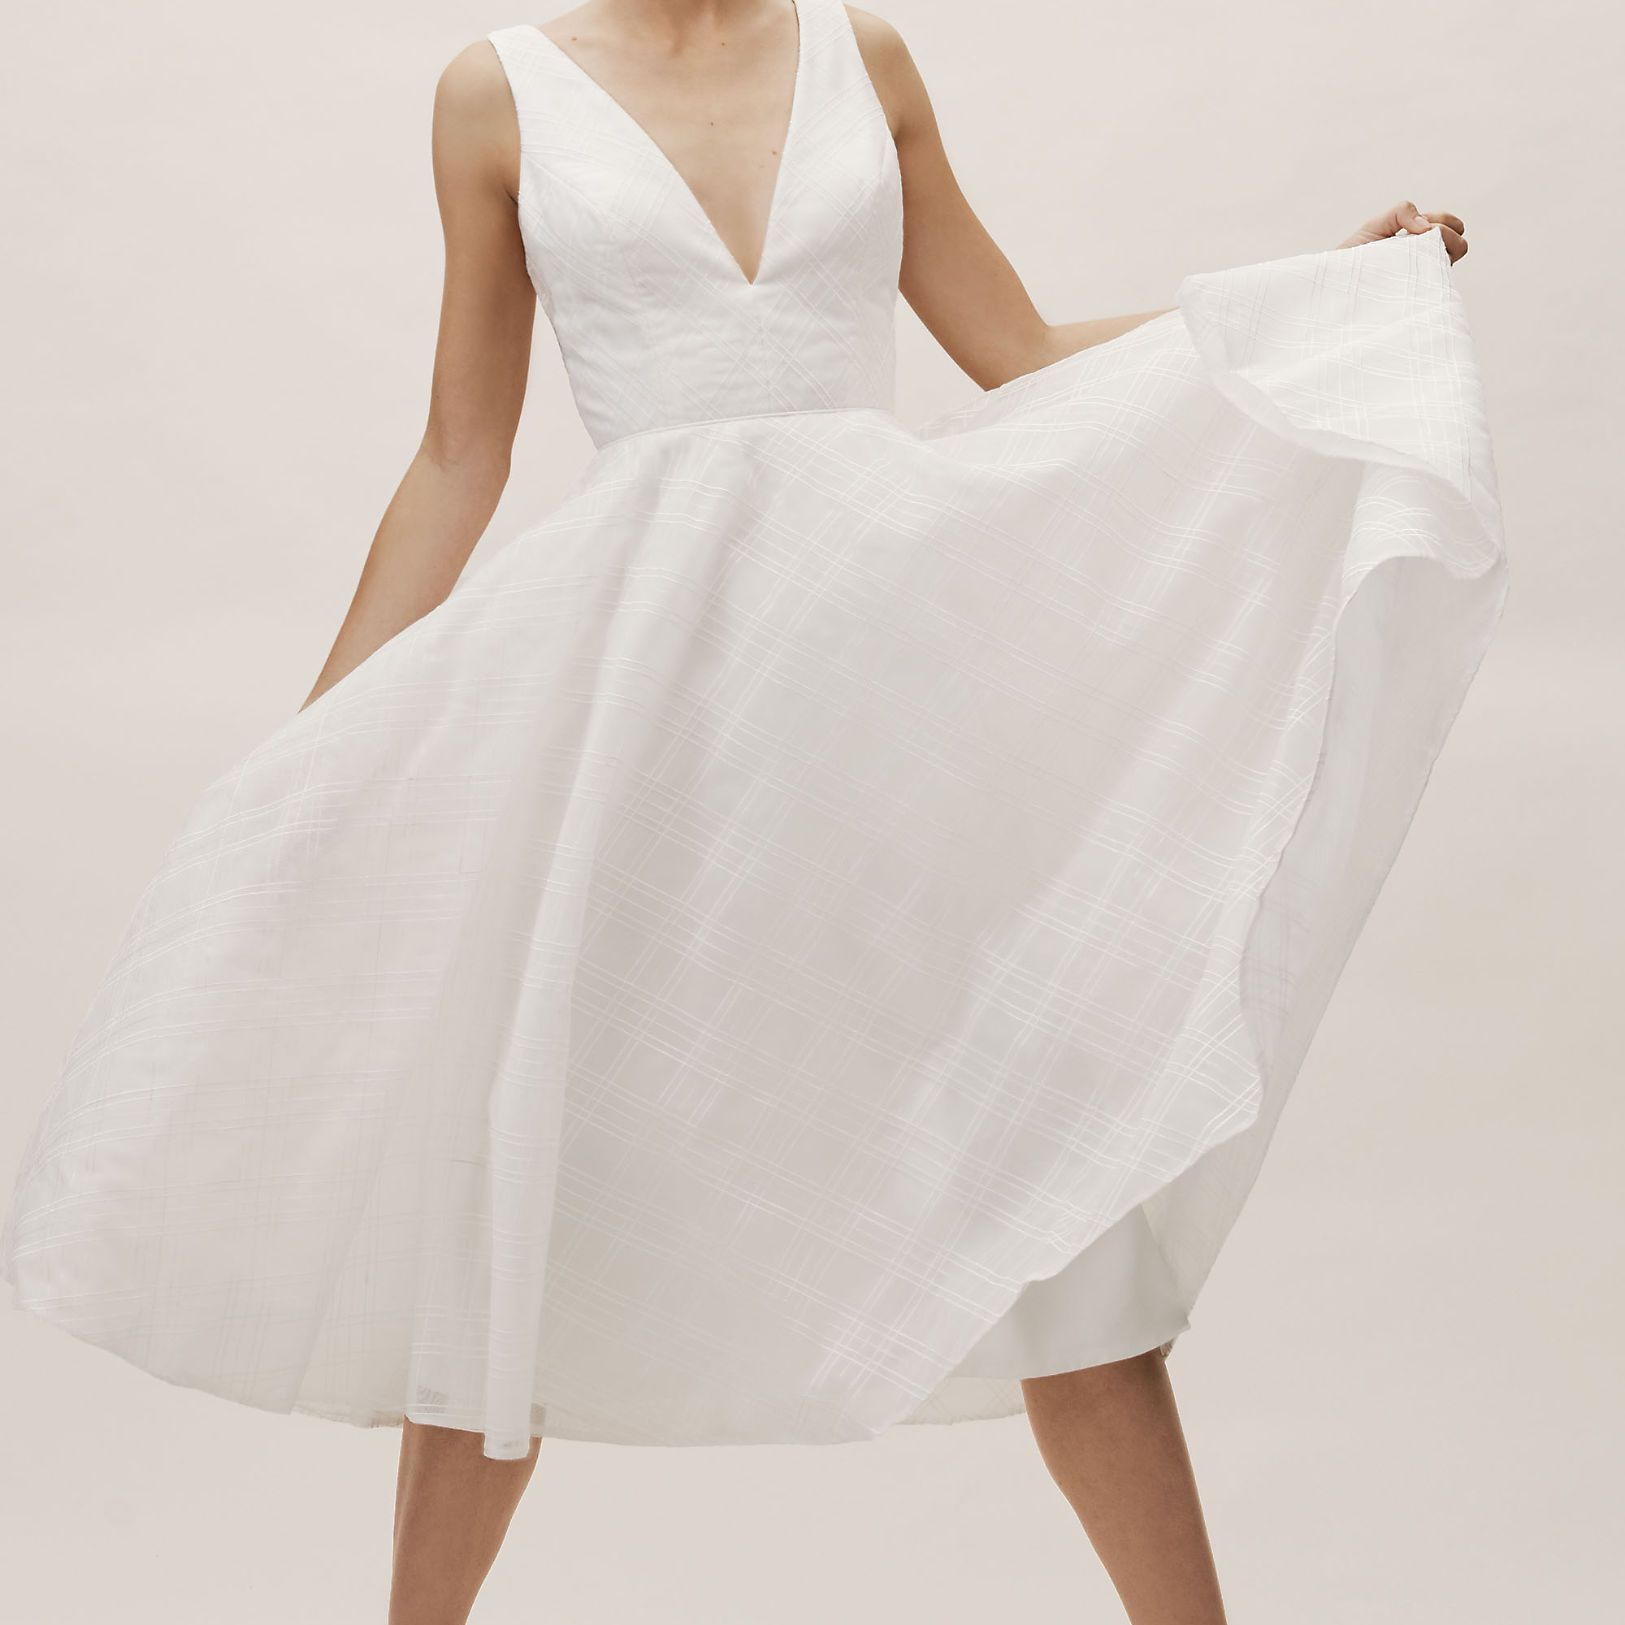 Courthouse Wedding Dress.24 Courthouse Wedding Outfits To Say I Do To